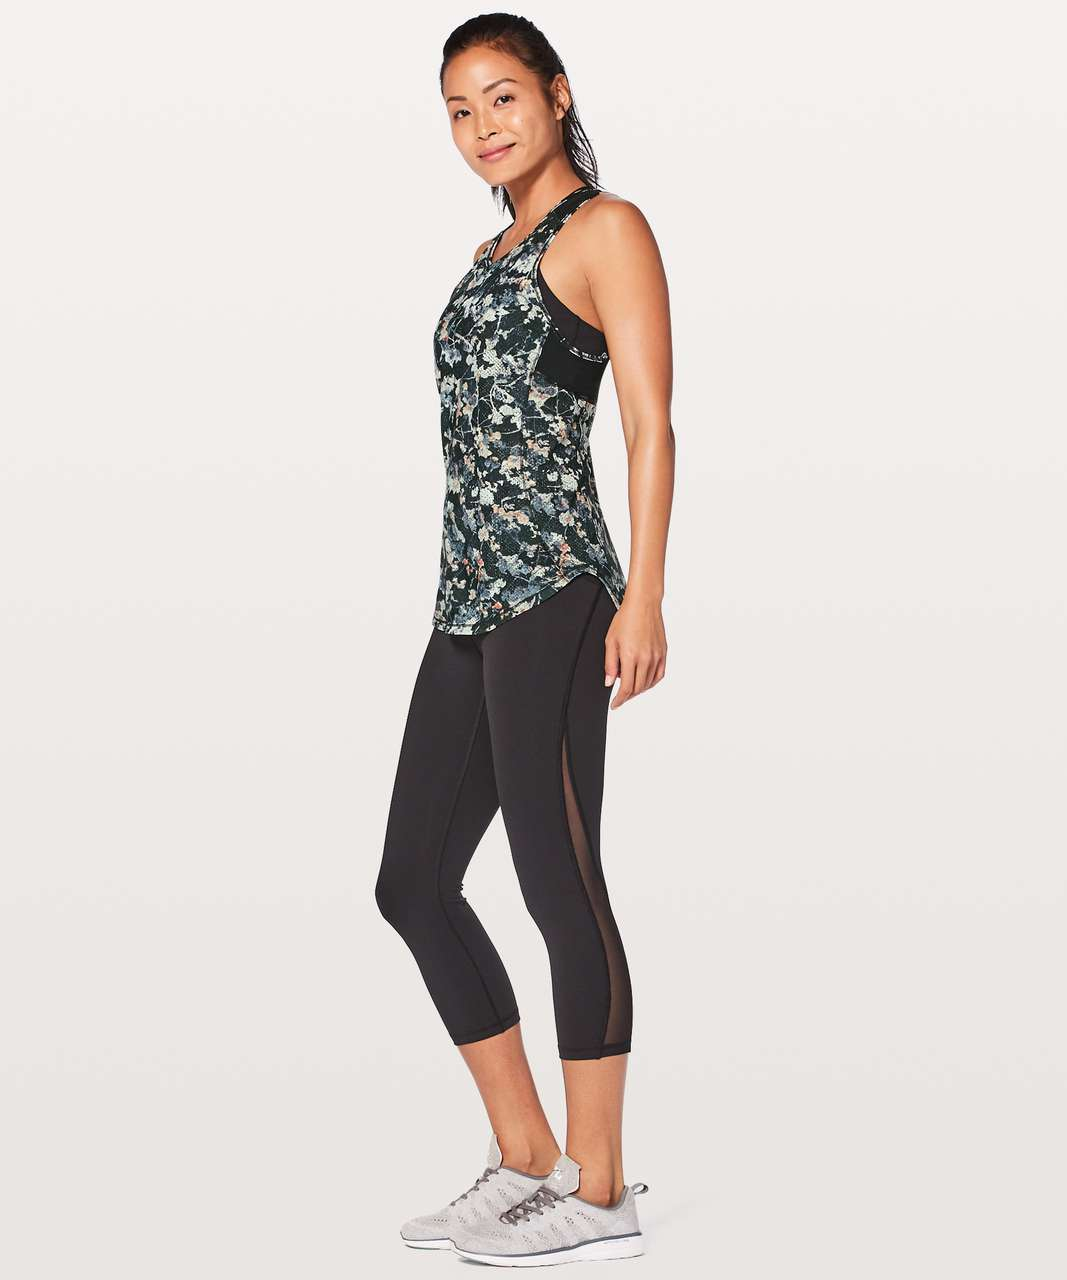 Lululemon Sculpt Tank II - Spring Bloom Multi / Black